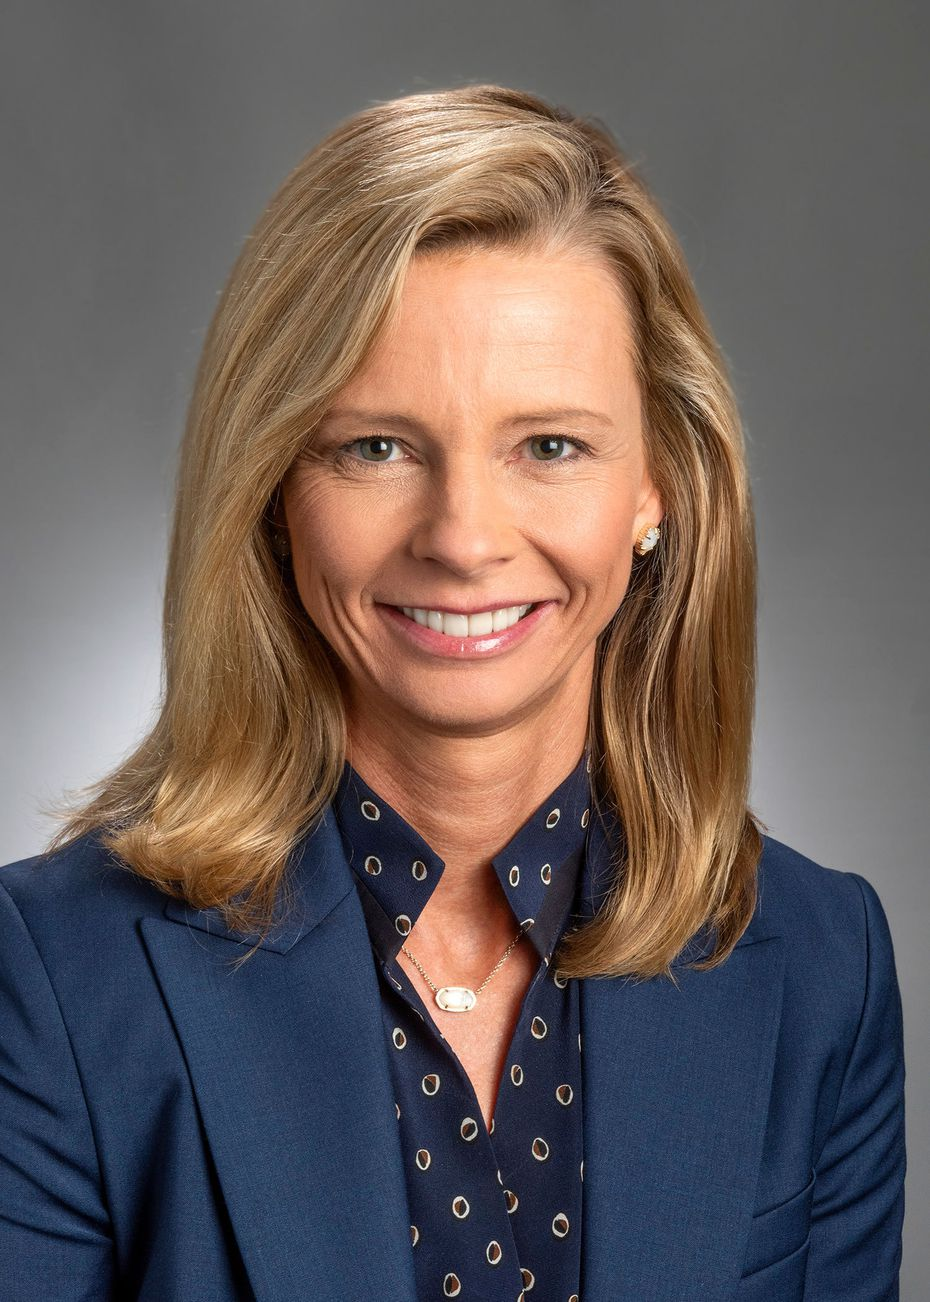 BNSF CEO Katie Farmer